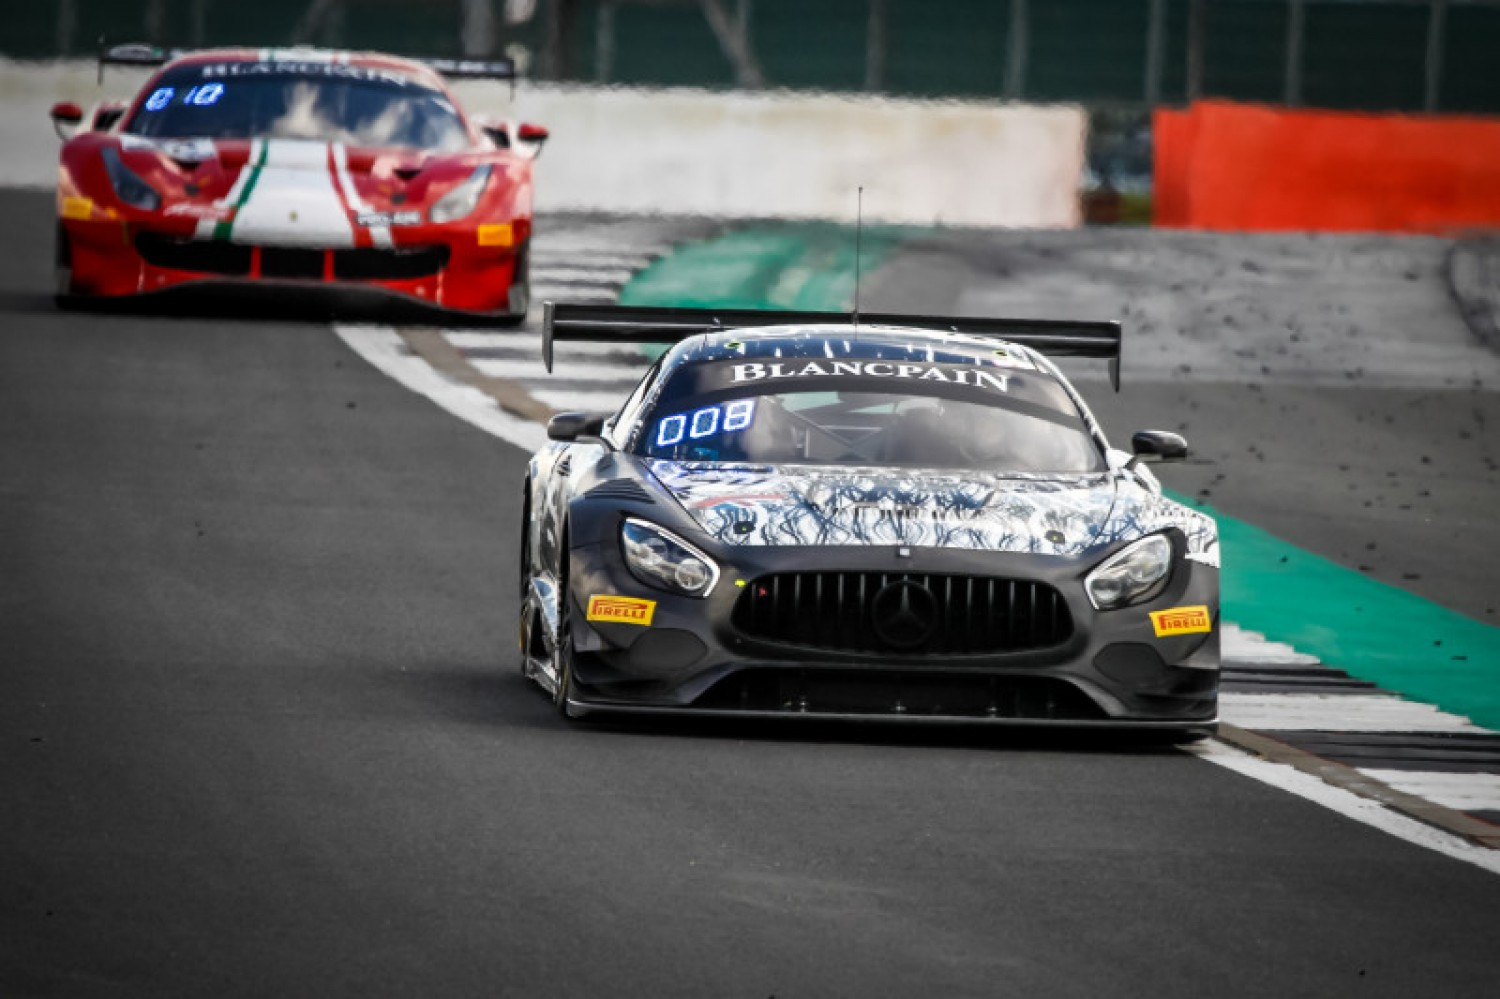 Ram Racing loses Silverstone Pro-Am win following post-race penalty, #52 AF Corse Ferrari promoted to P1